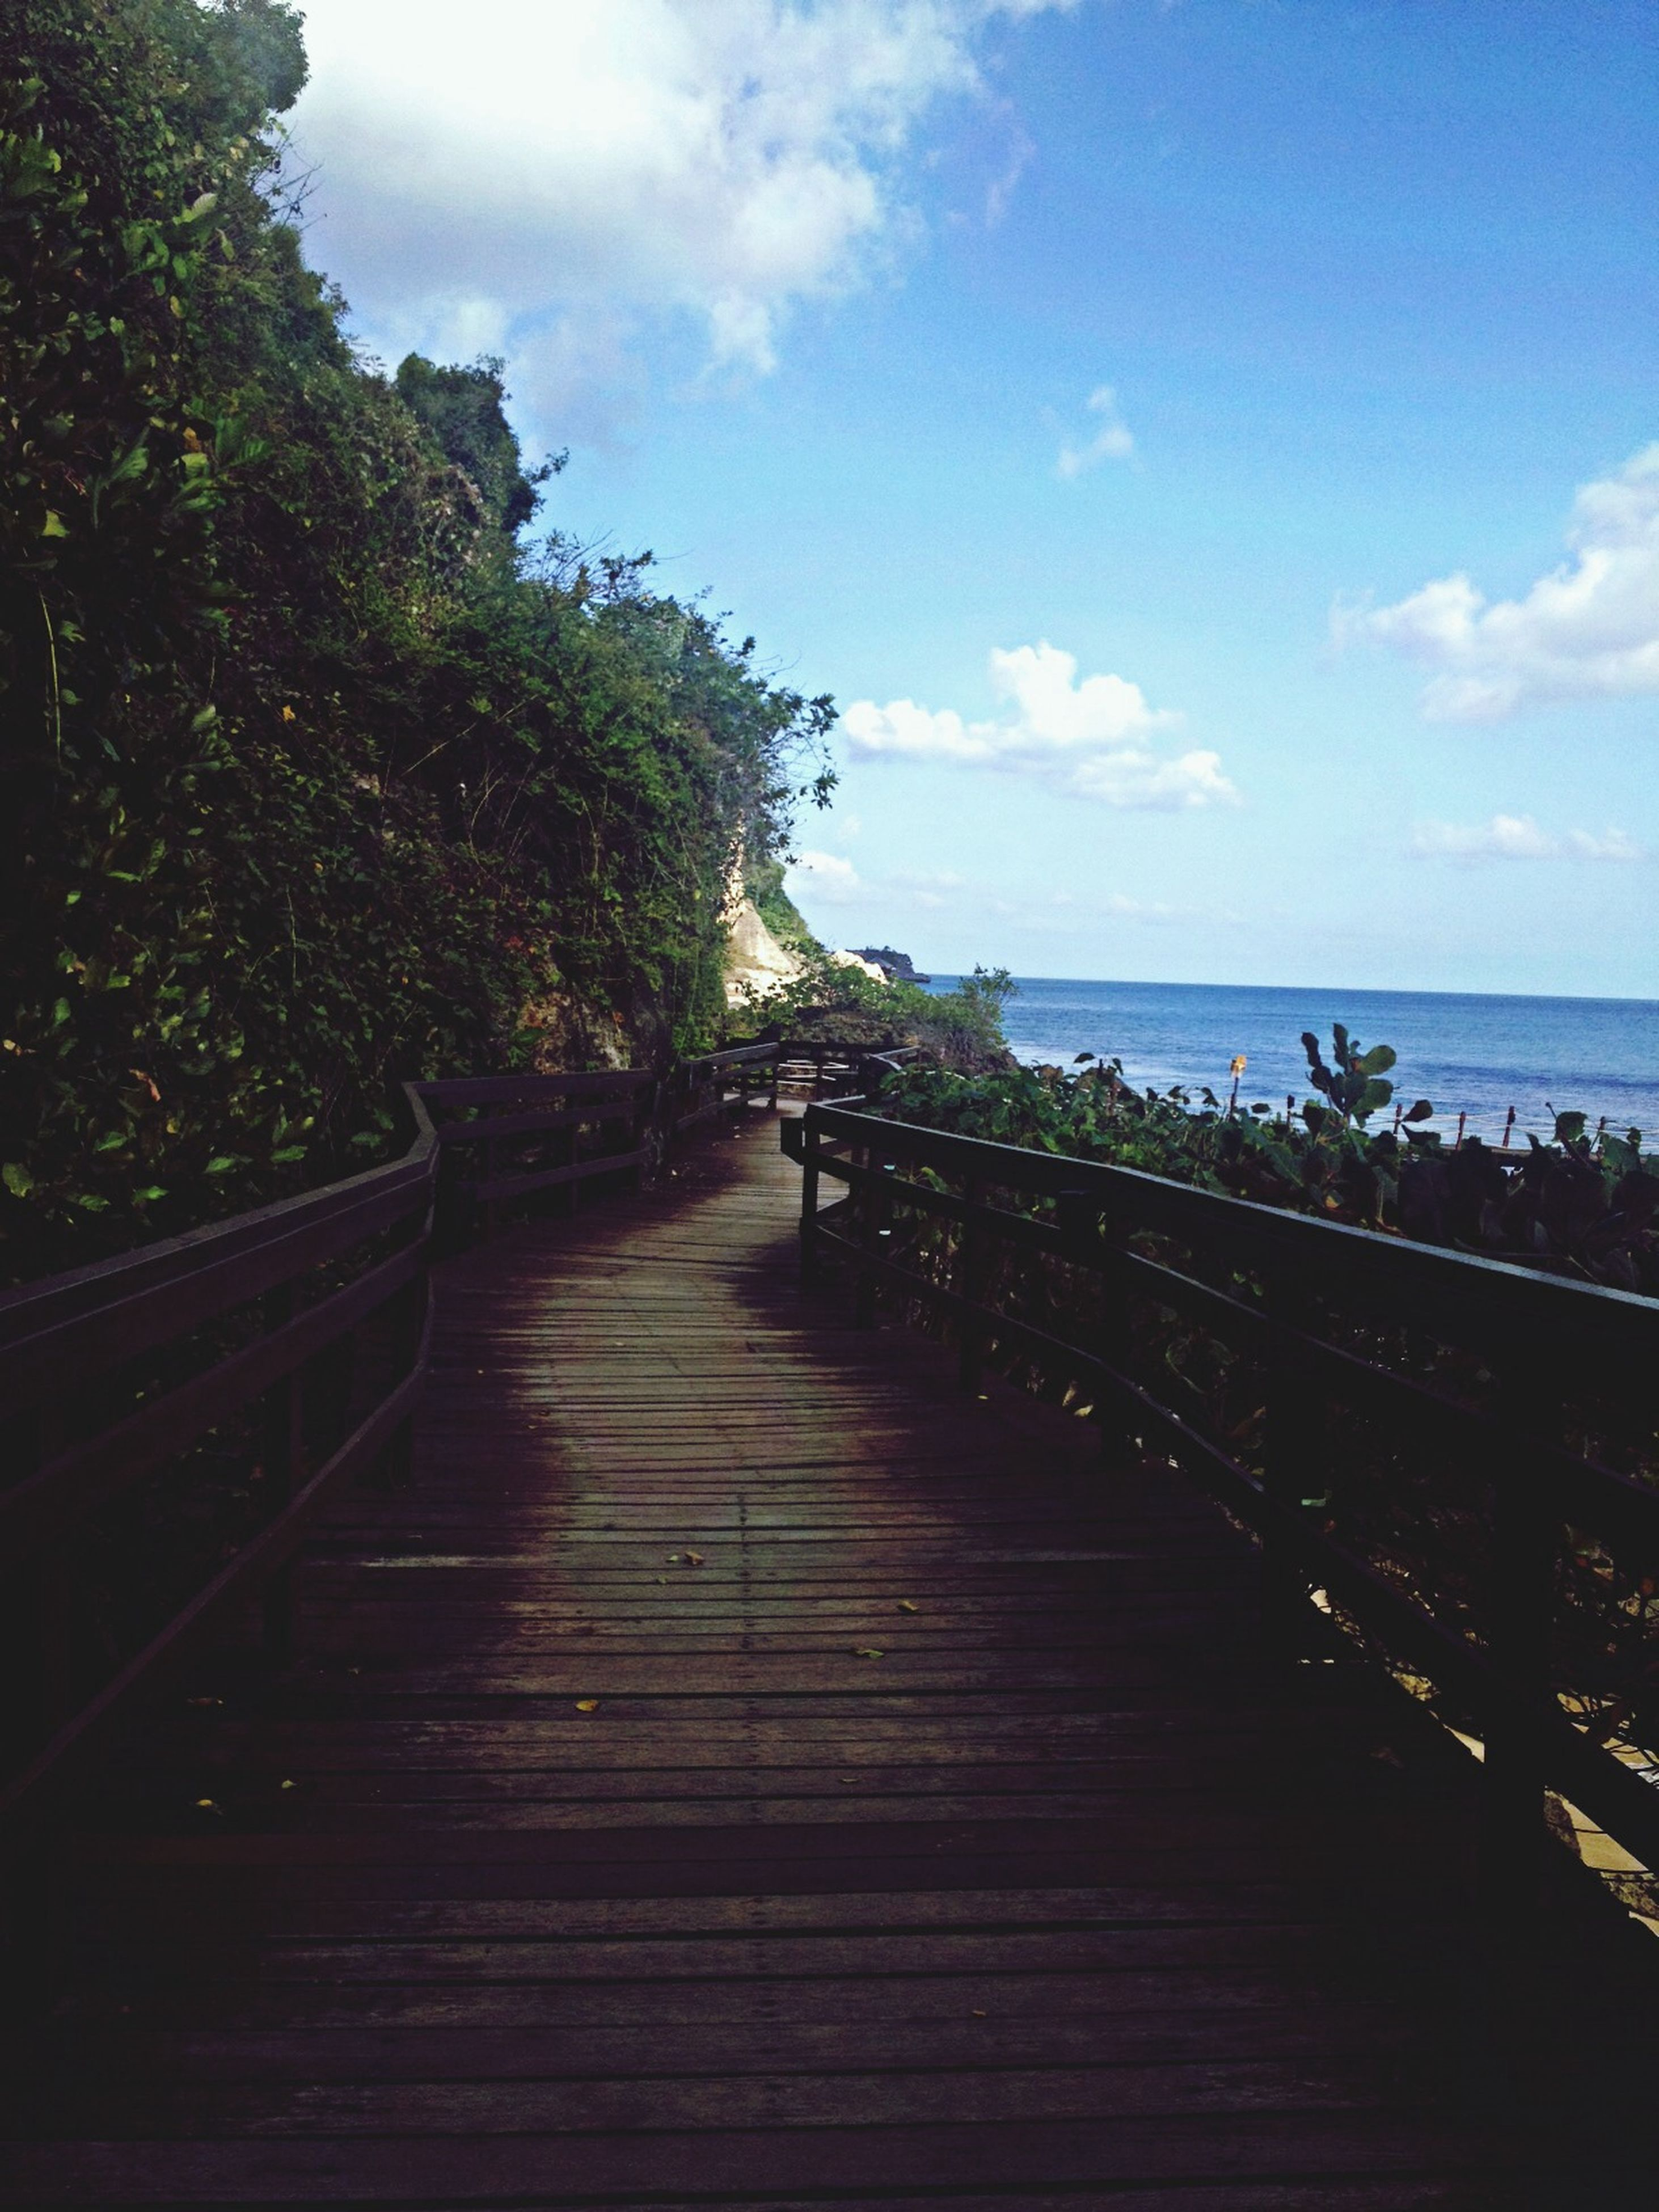 sea, sky, water, the way forward, tranquil scene, tranquility, horizon over water, railing, scenics, boardwalk, beauty in nature, tree, wood - material, nature, pier, cloud - sky, cloud, beach, idyllic, blue